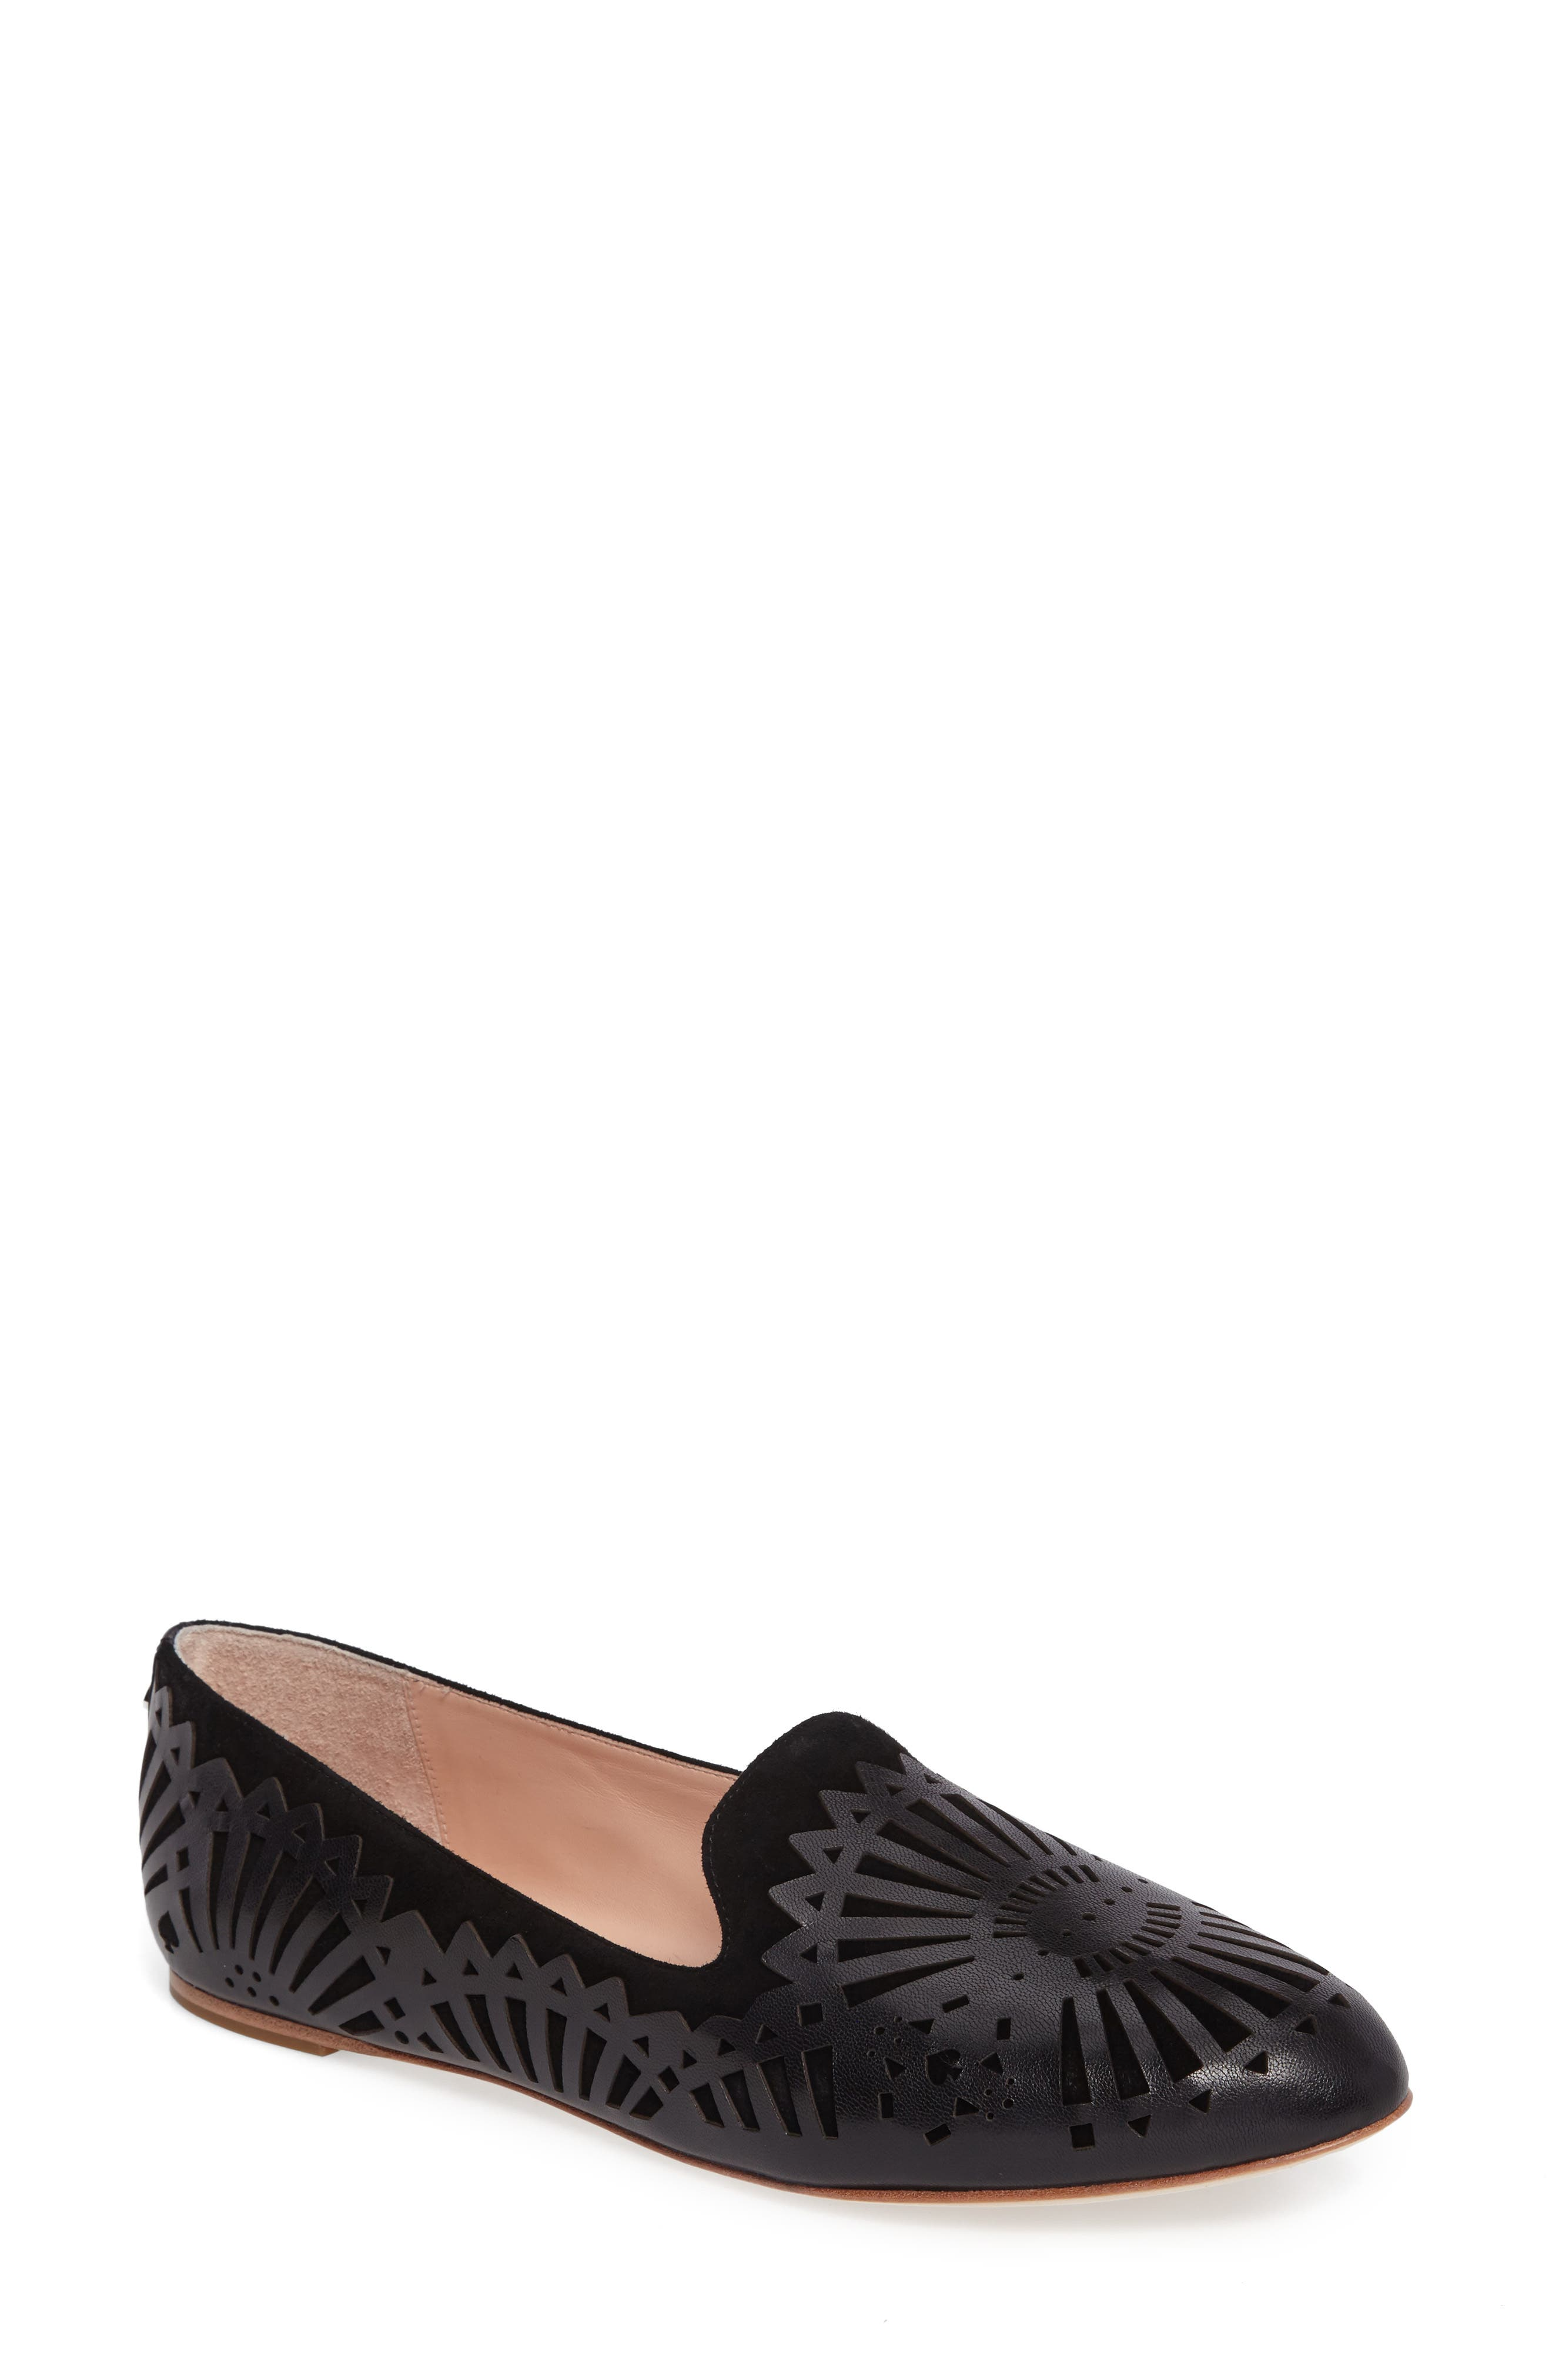 kate spade new york sycamore loafer (Women)